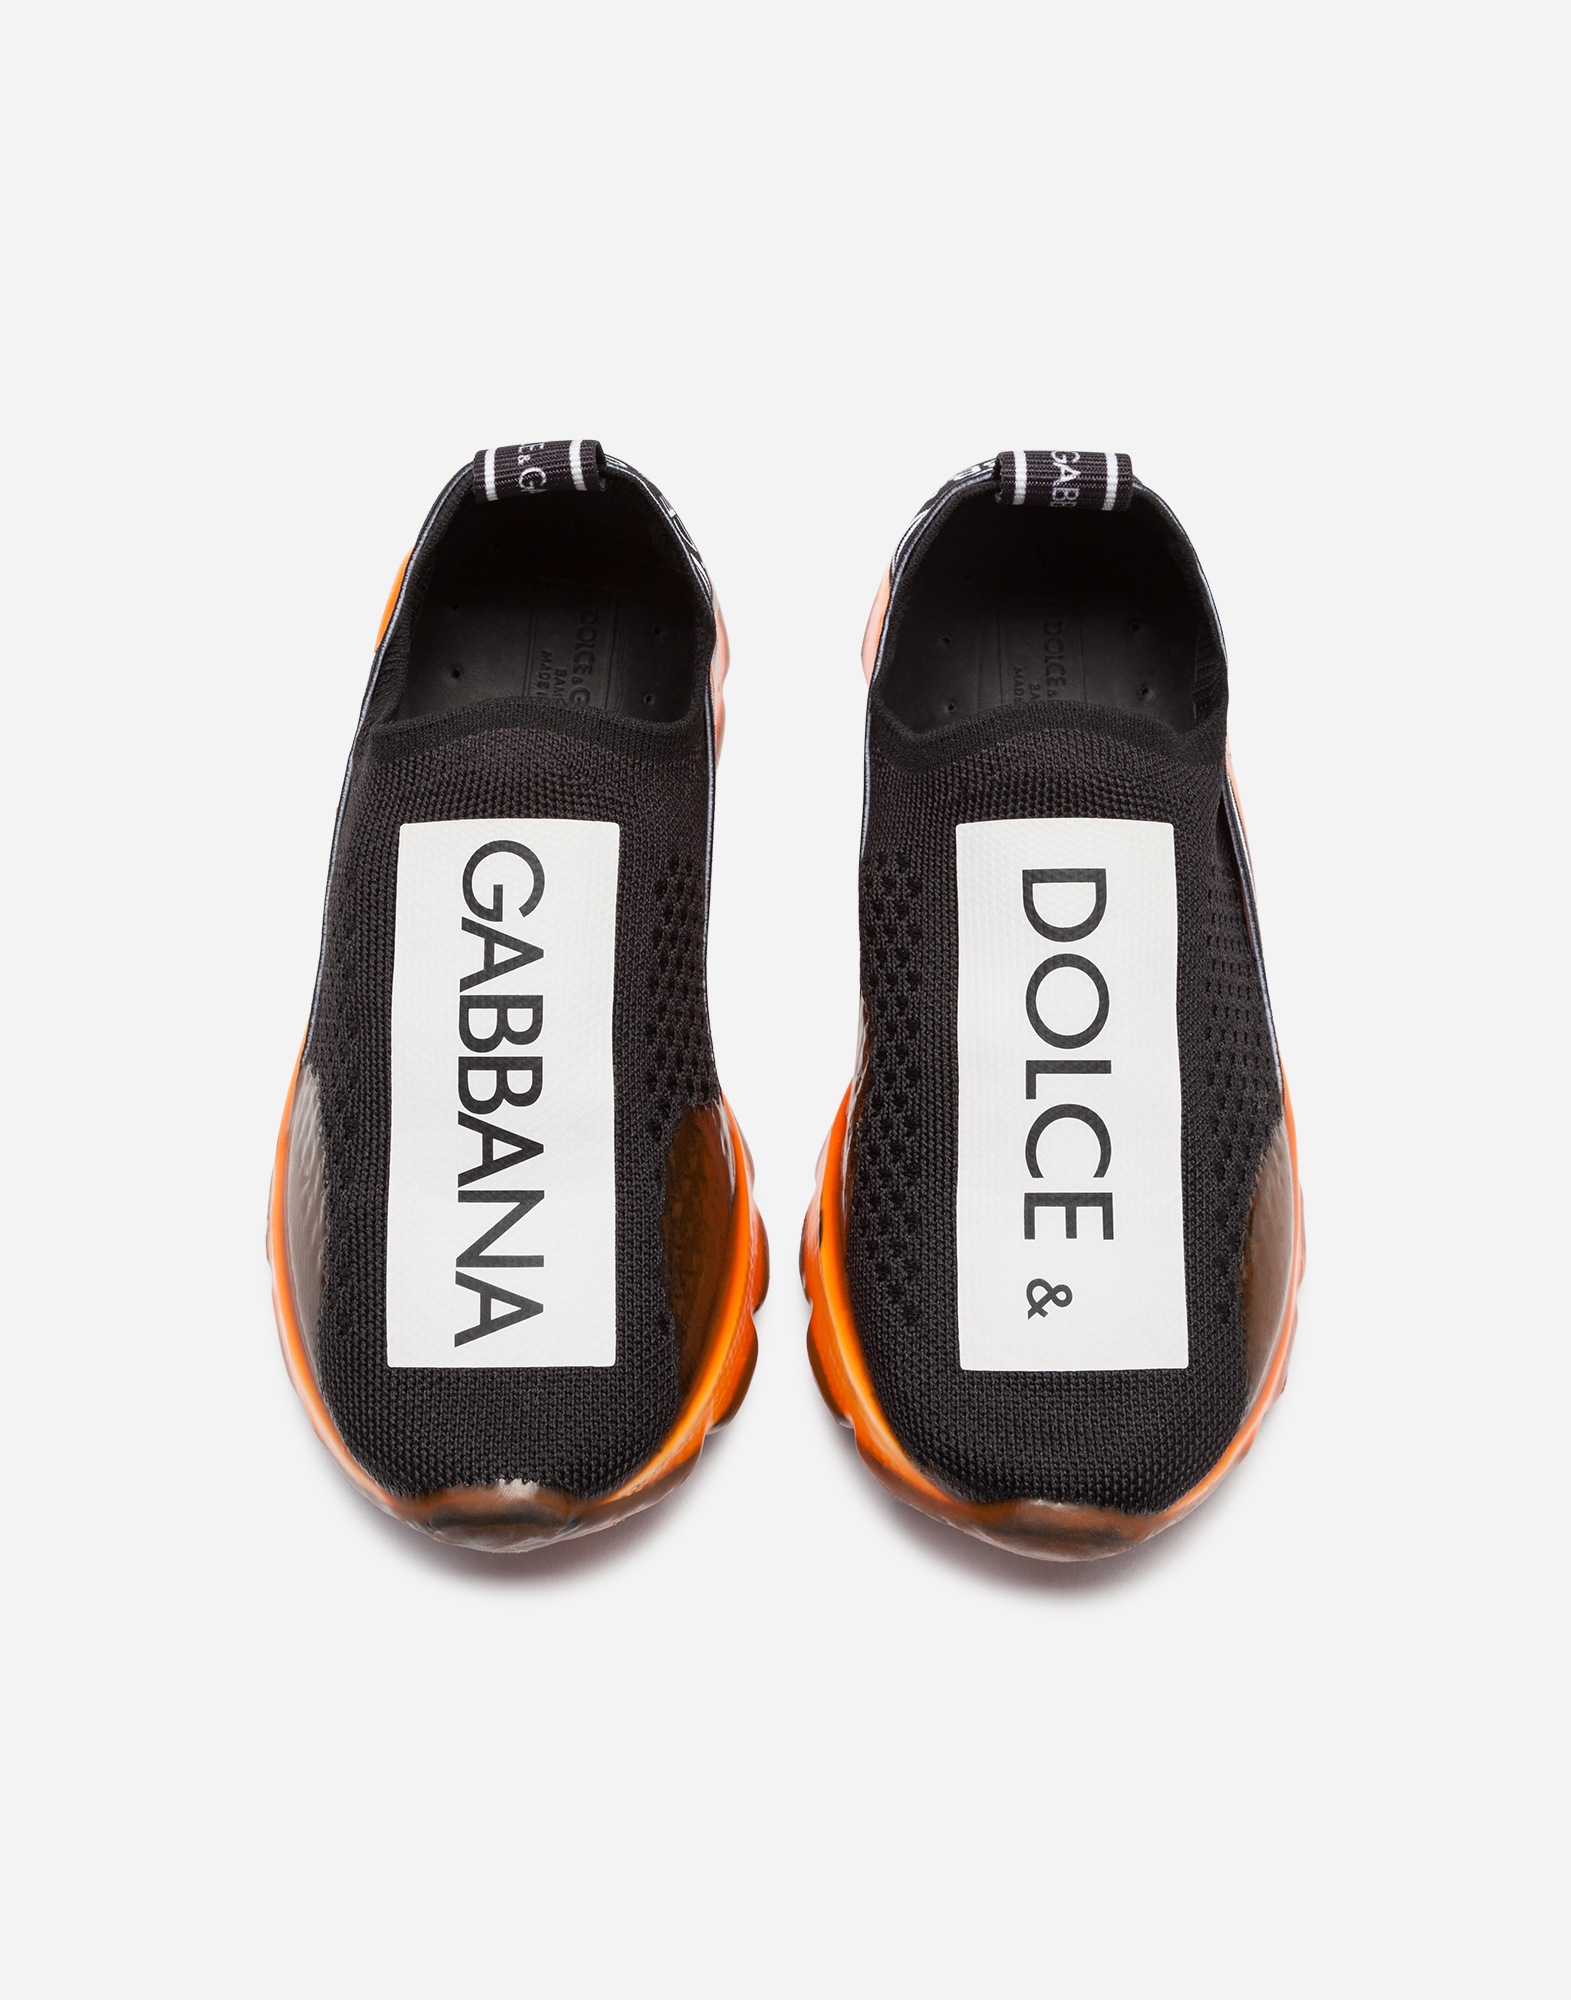 Dolce & Gabbana SORRENTO SLIP-ON LOGO SNEAKERS